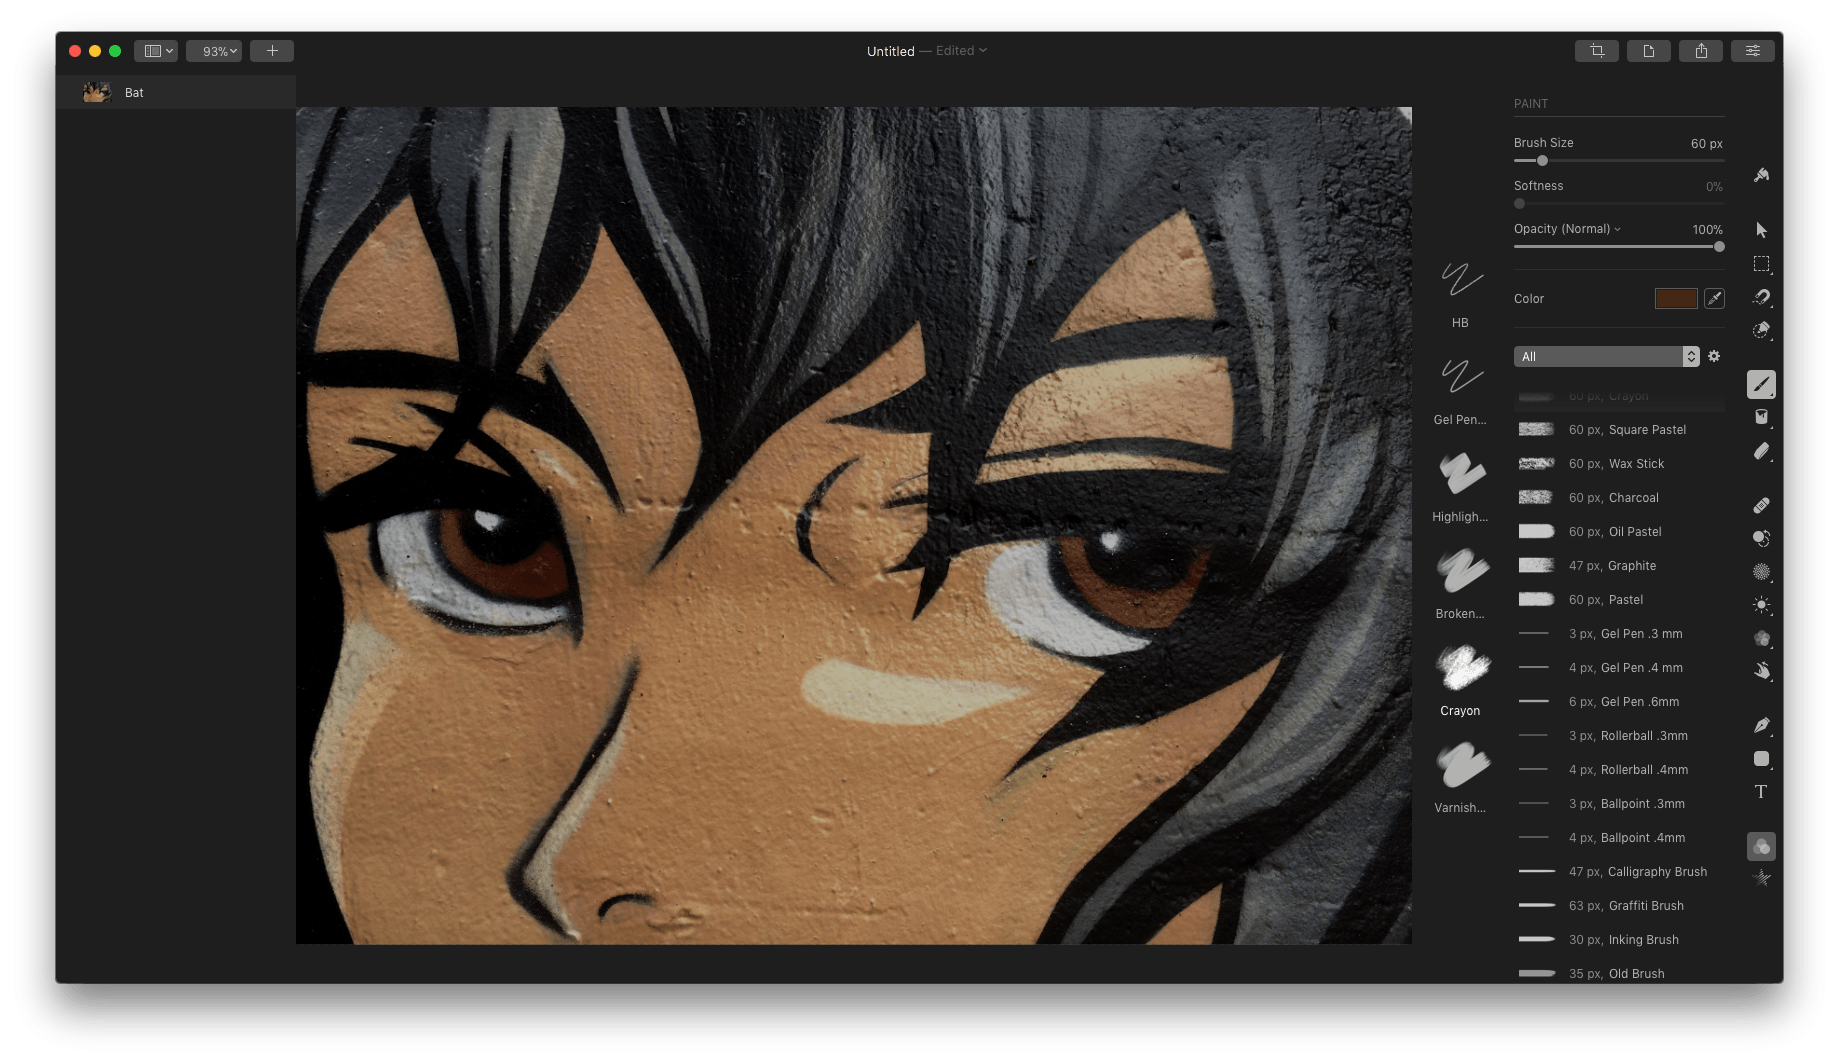 Pixelmator Pro includes a large number of customizable brushes for painting.